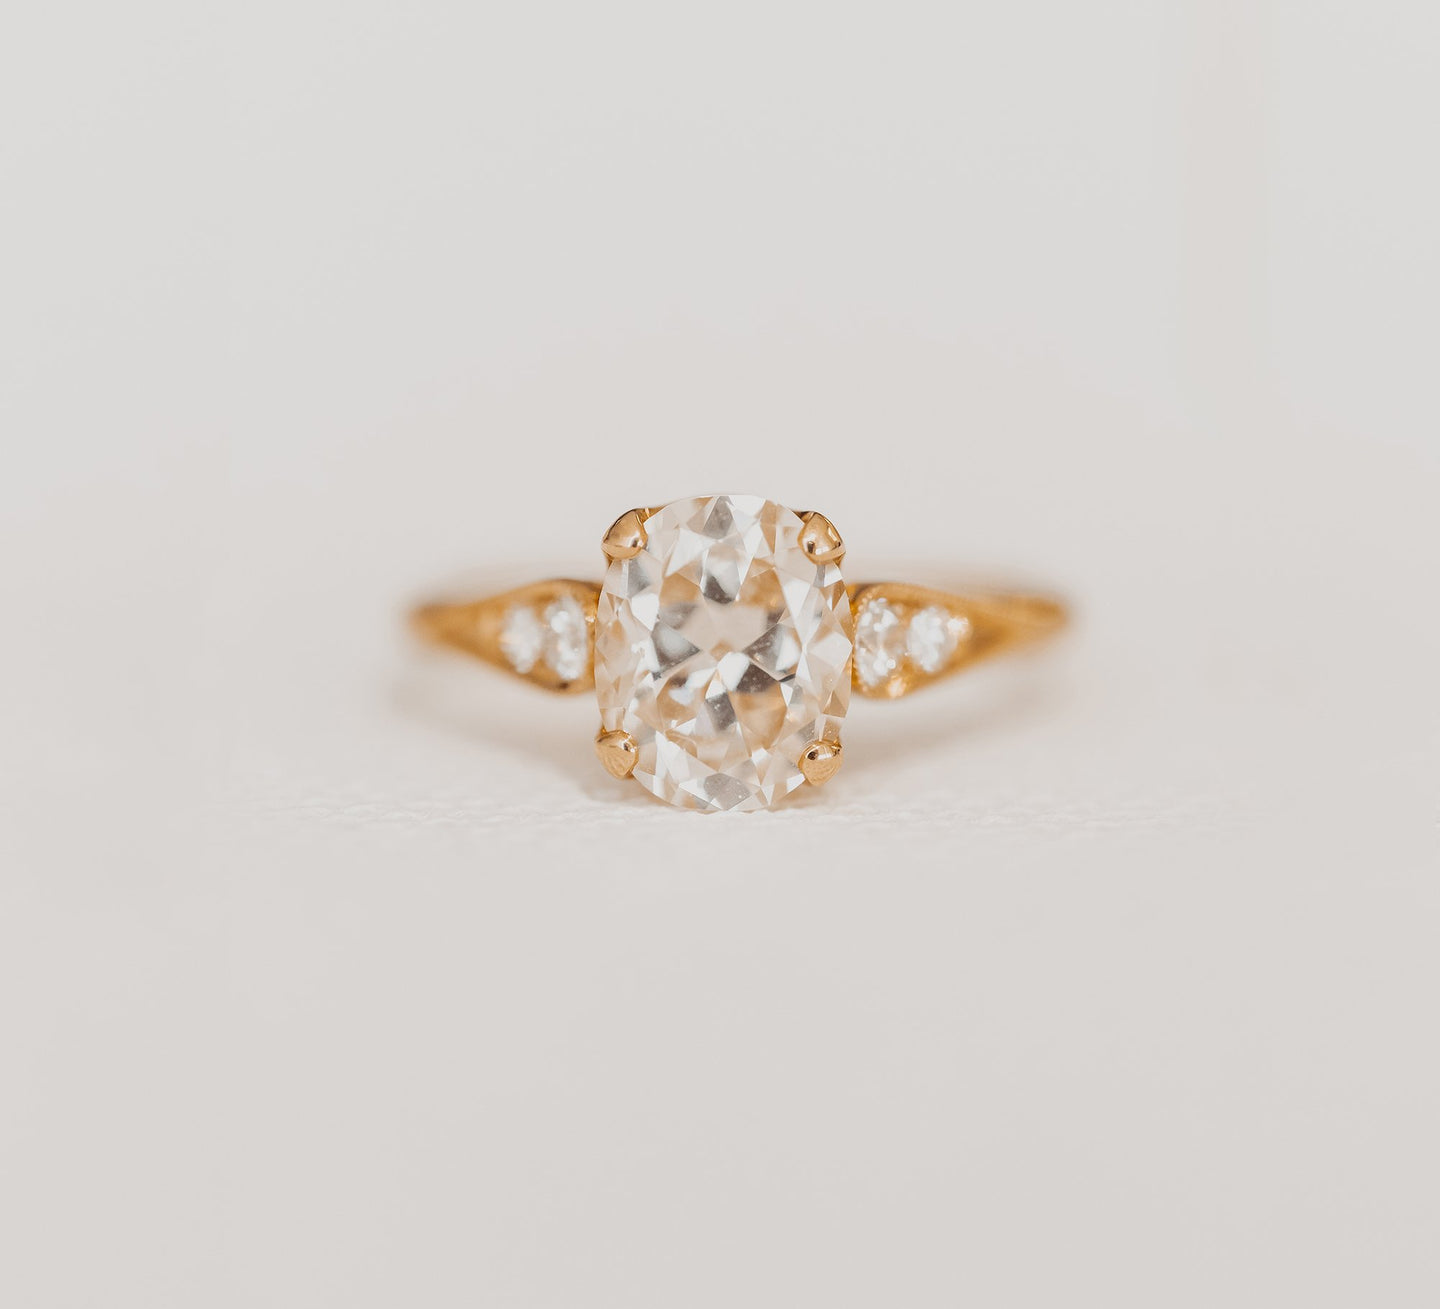 Antique and Vintage Engagement Rings in San Diego | Harold Stevens